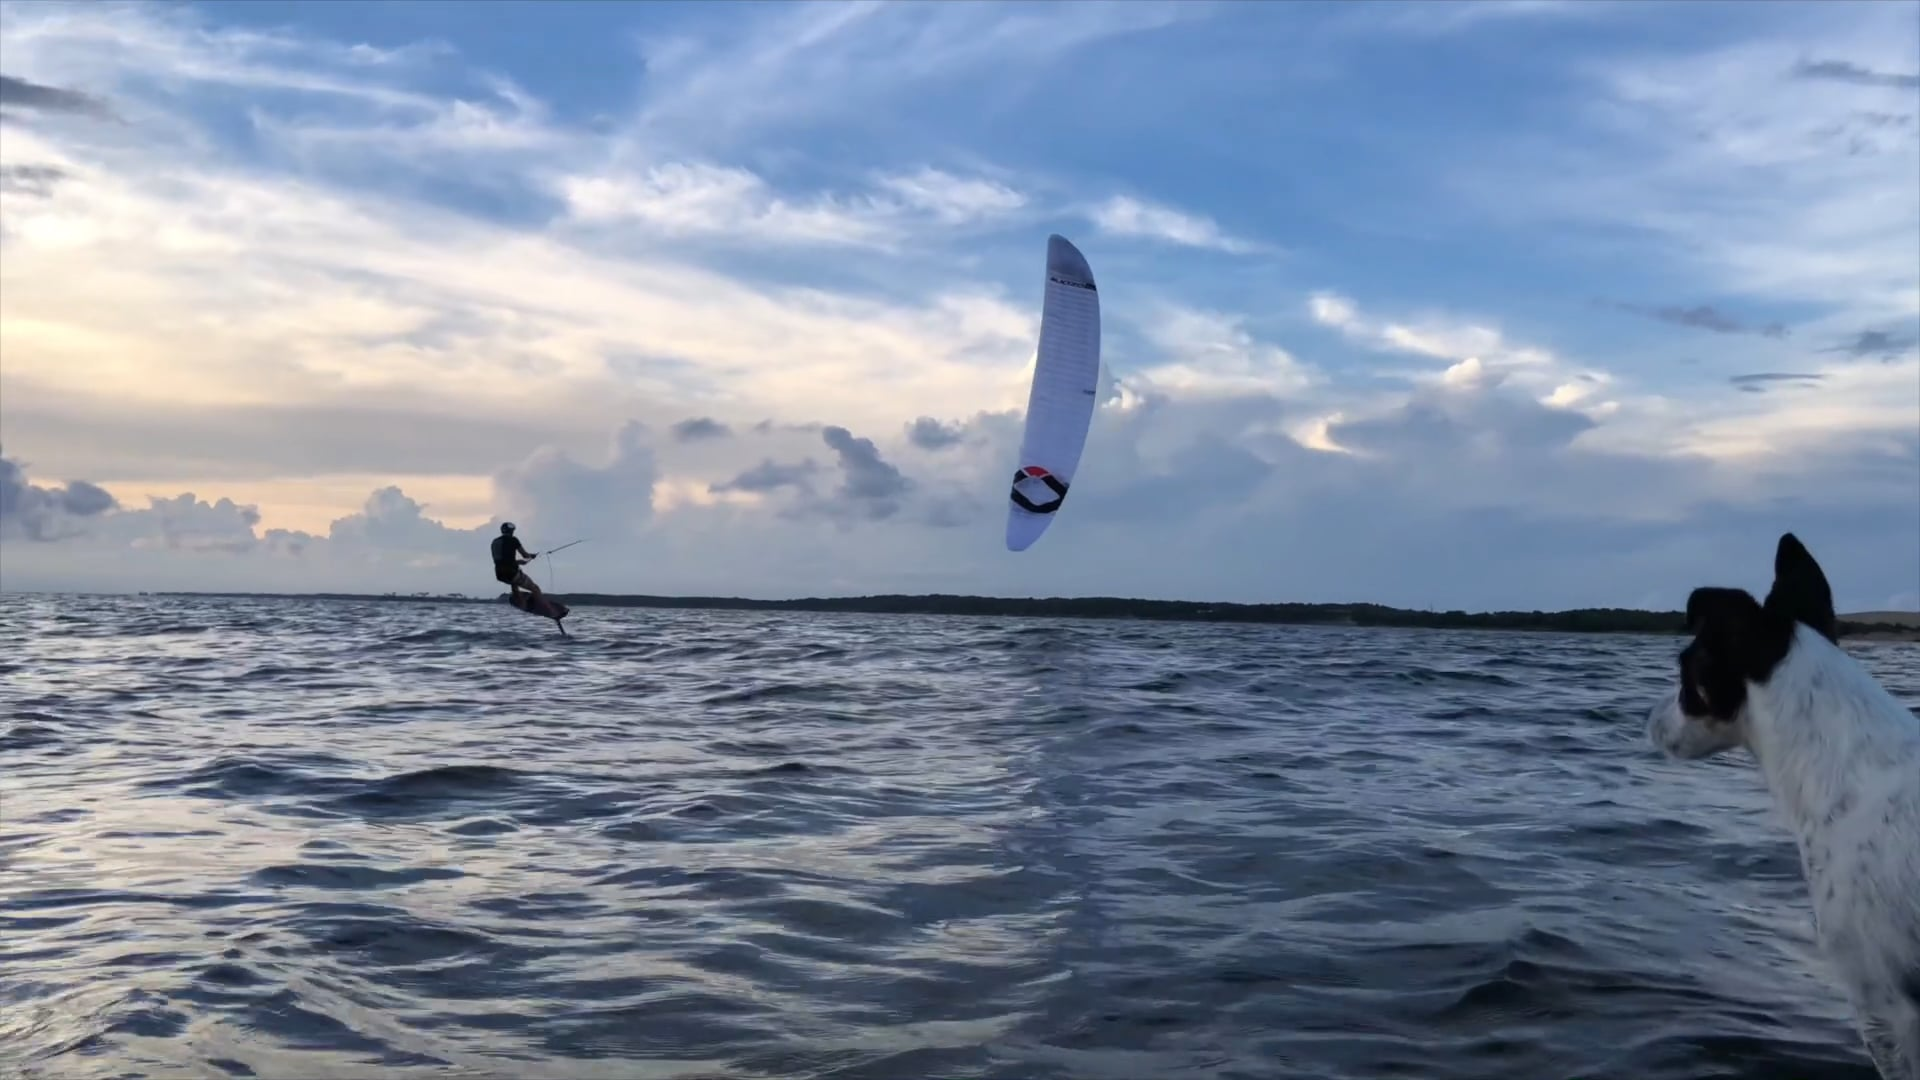 ZEUS CAMET CAMERON epic sunset foiling session - with Epic Kites Kiteboarding